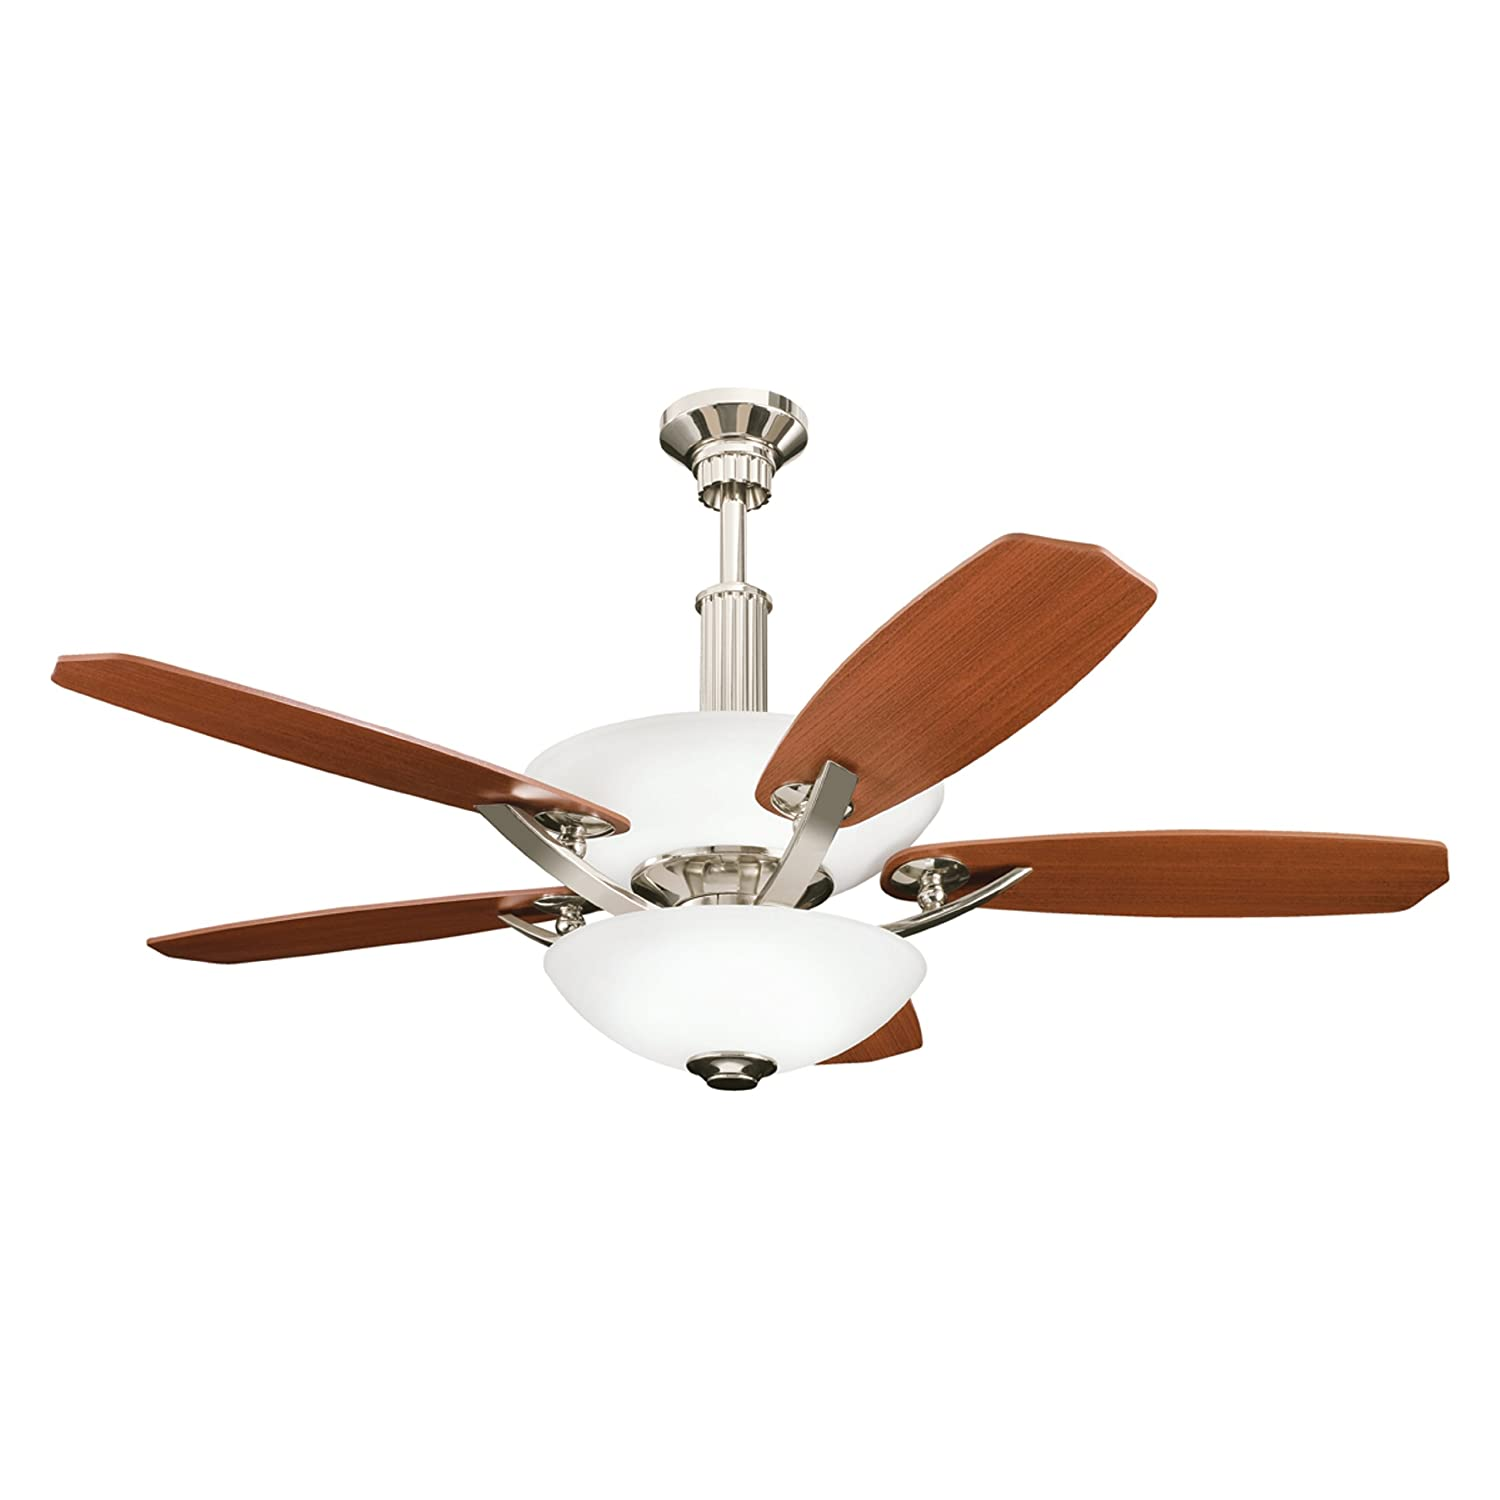 Kichler PN 56 Ceiling Fan Amazon